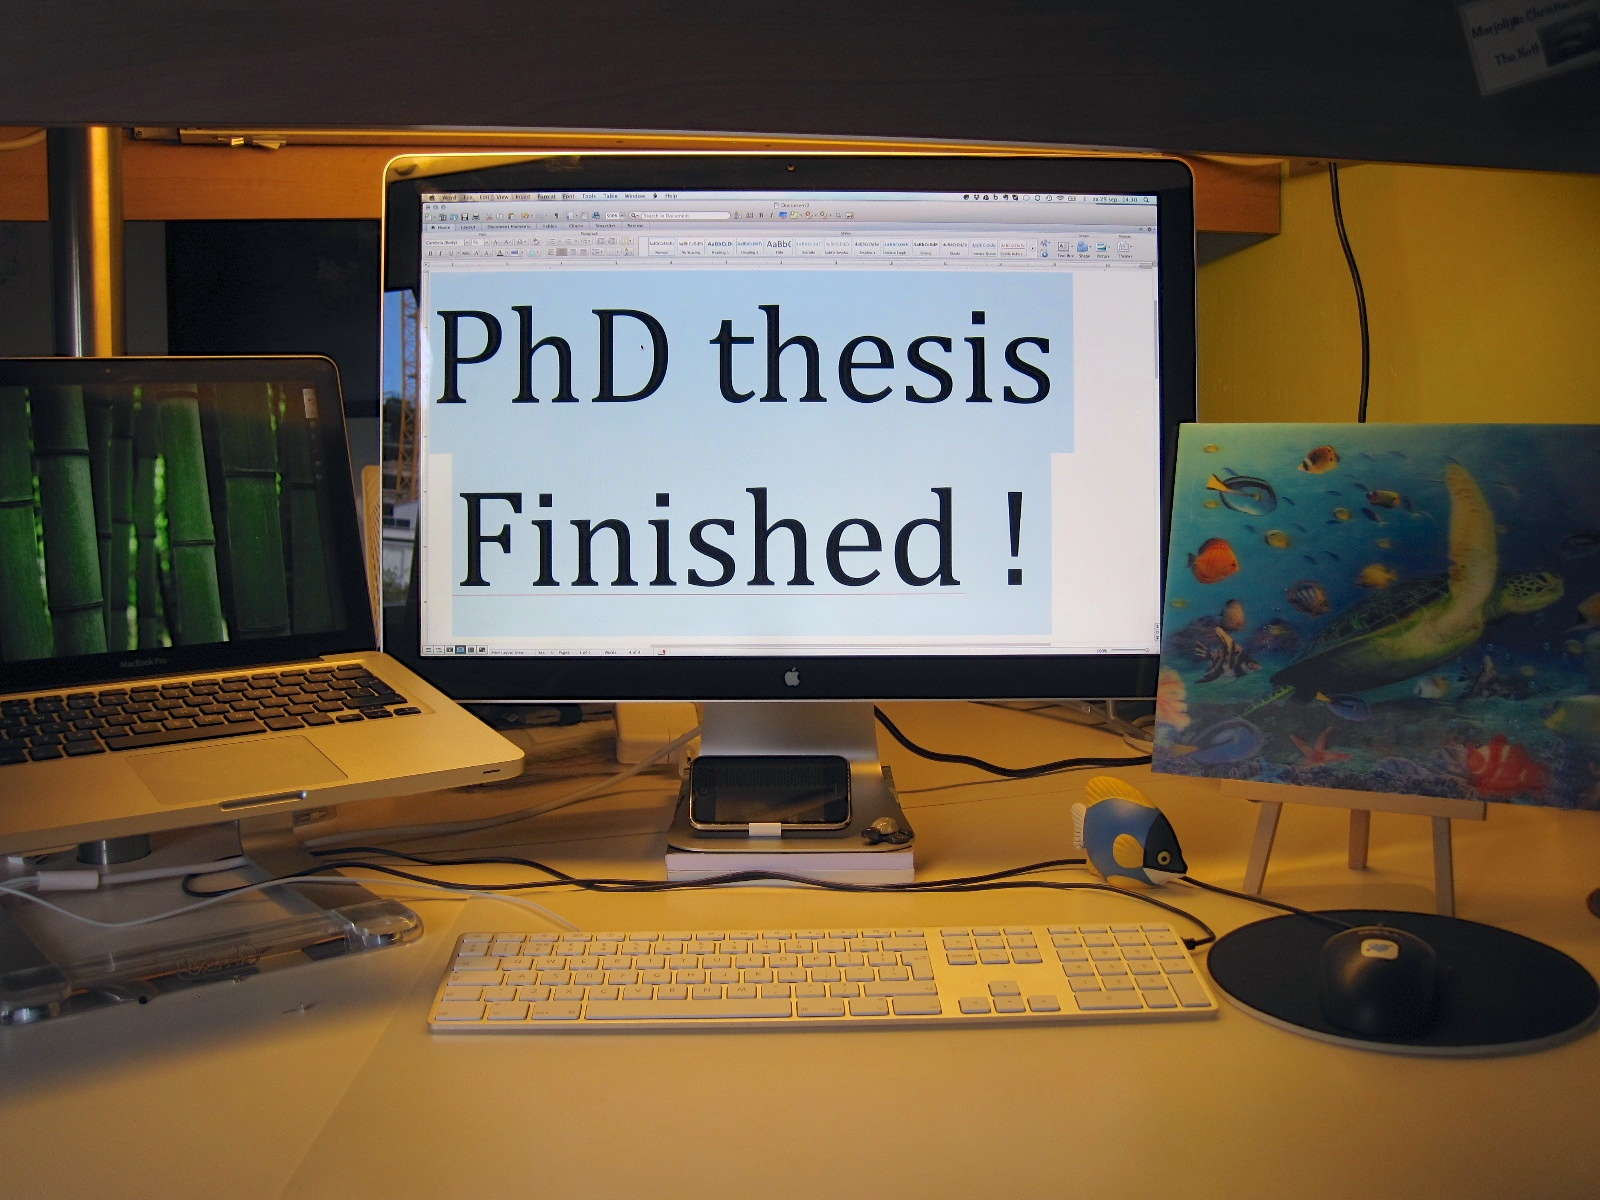 doctoral thesis dissertation Writes unique master thesis papers, phd dissertations, and college research proposals each dissertation or thesis is original and never resold.